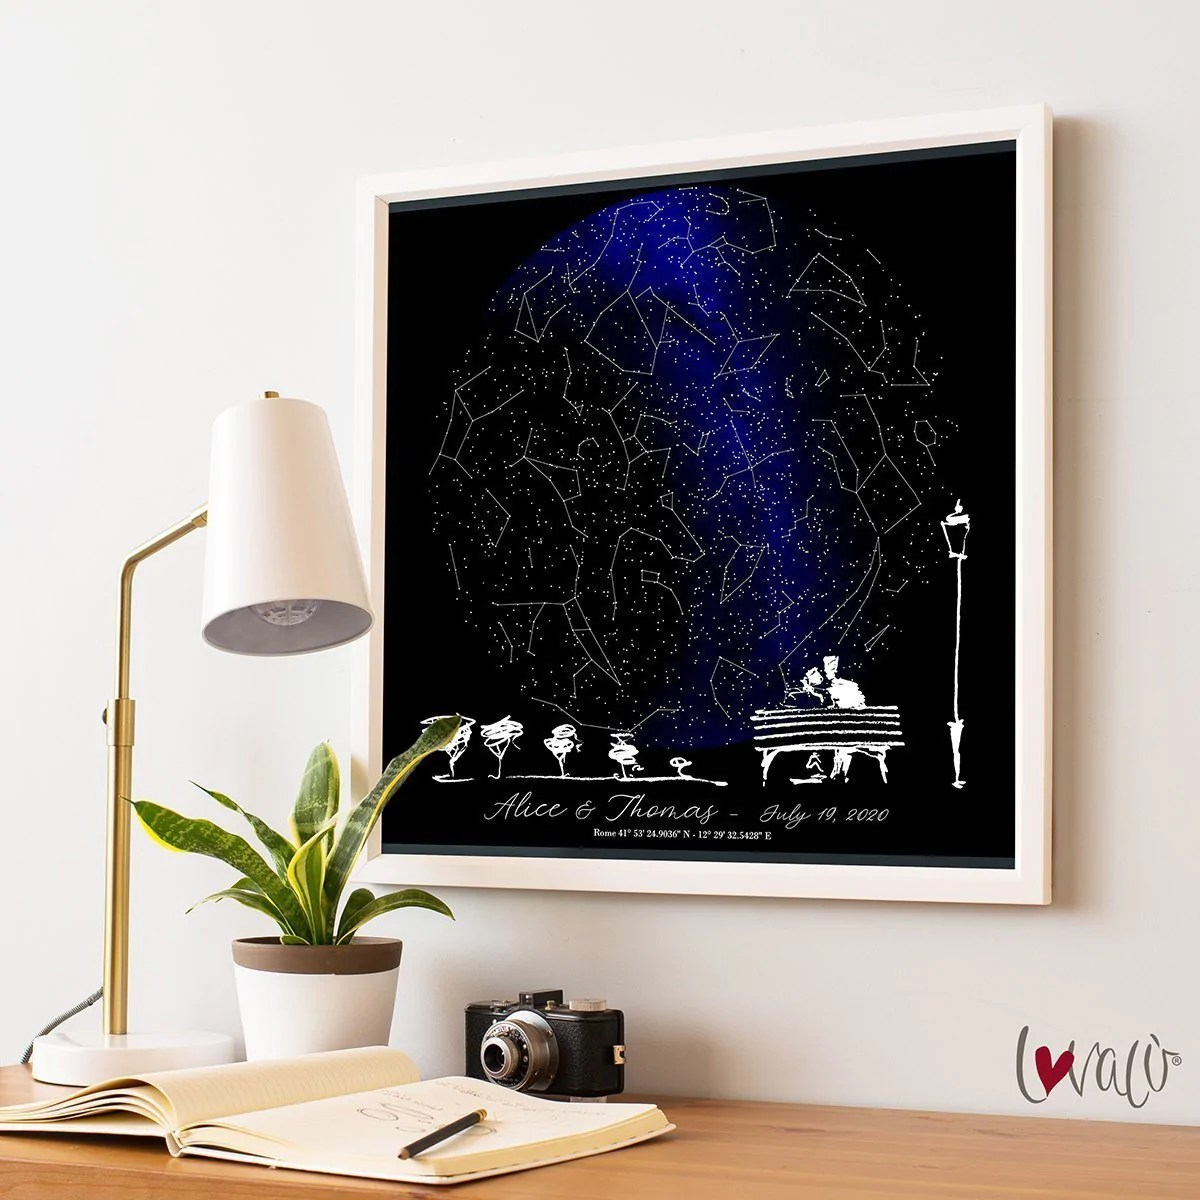 custom star map night sky print star map poster wedding gift constellation wedding anniversary gift personalized gift engagement gift